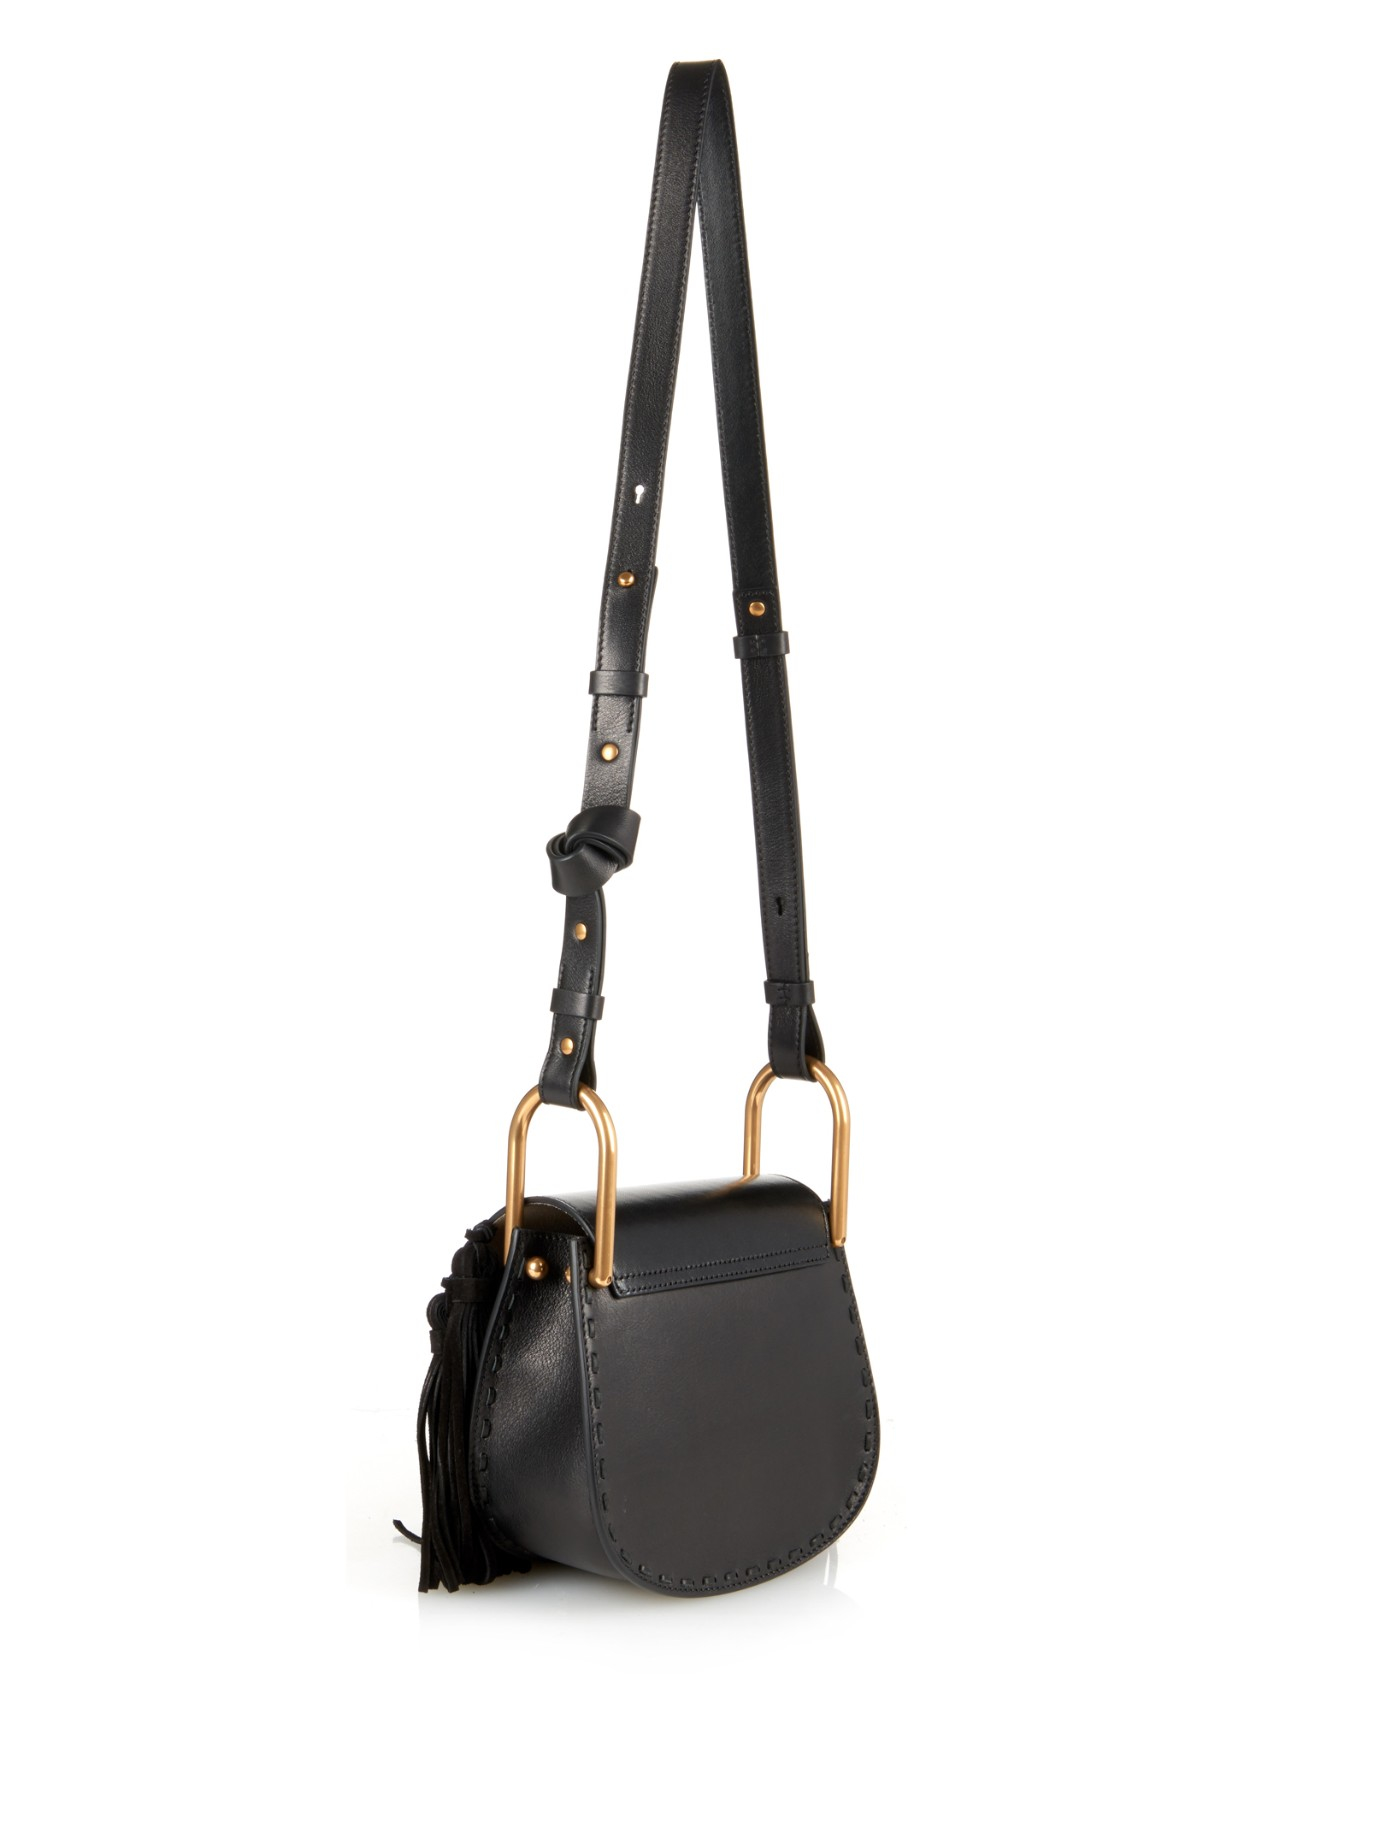 Chlo�� Hudson Mini Cross-Body Bag in Black | Lyst